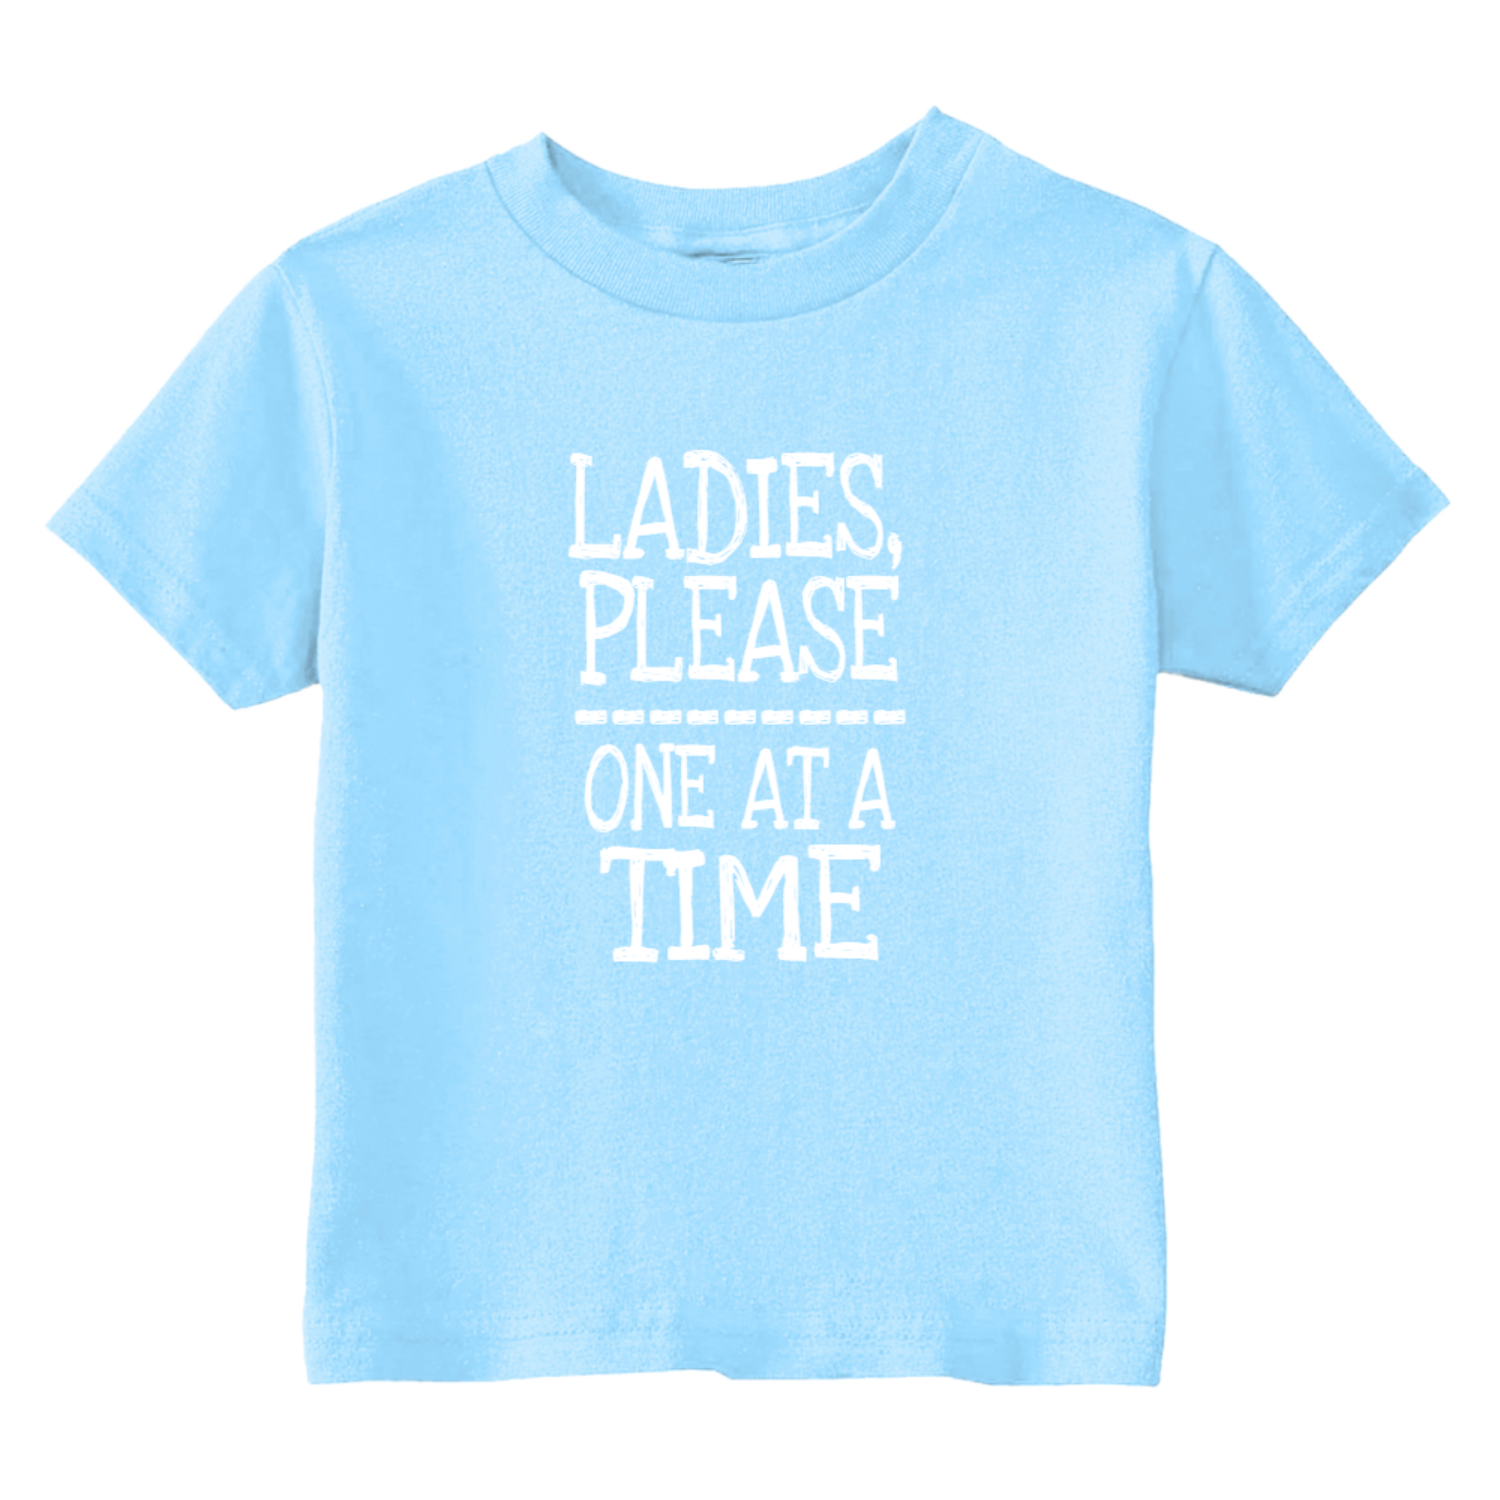 Ladies Please One At A Time Toddler T-Shirt Light Blue